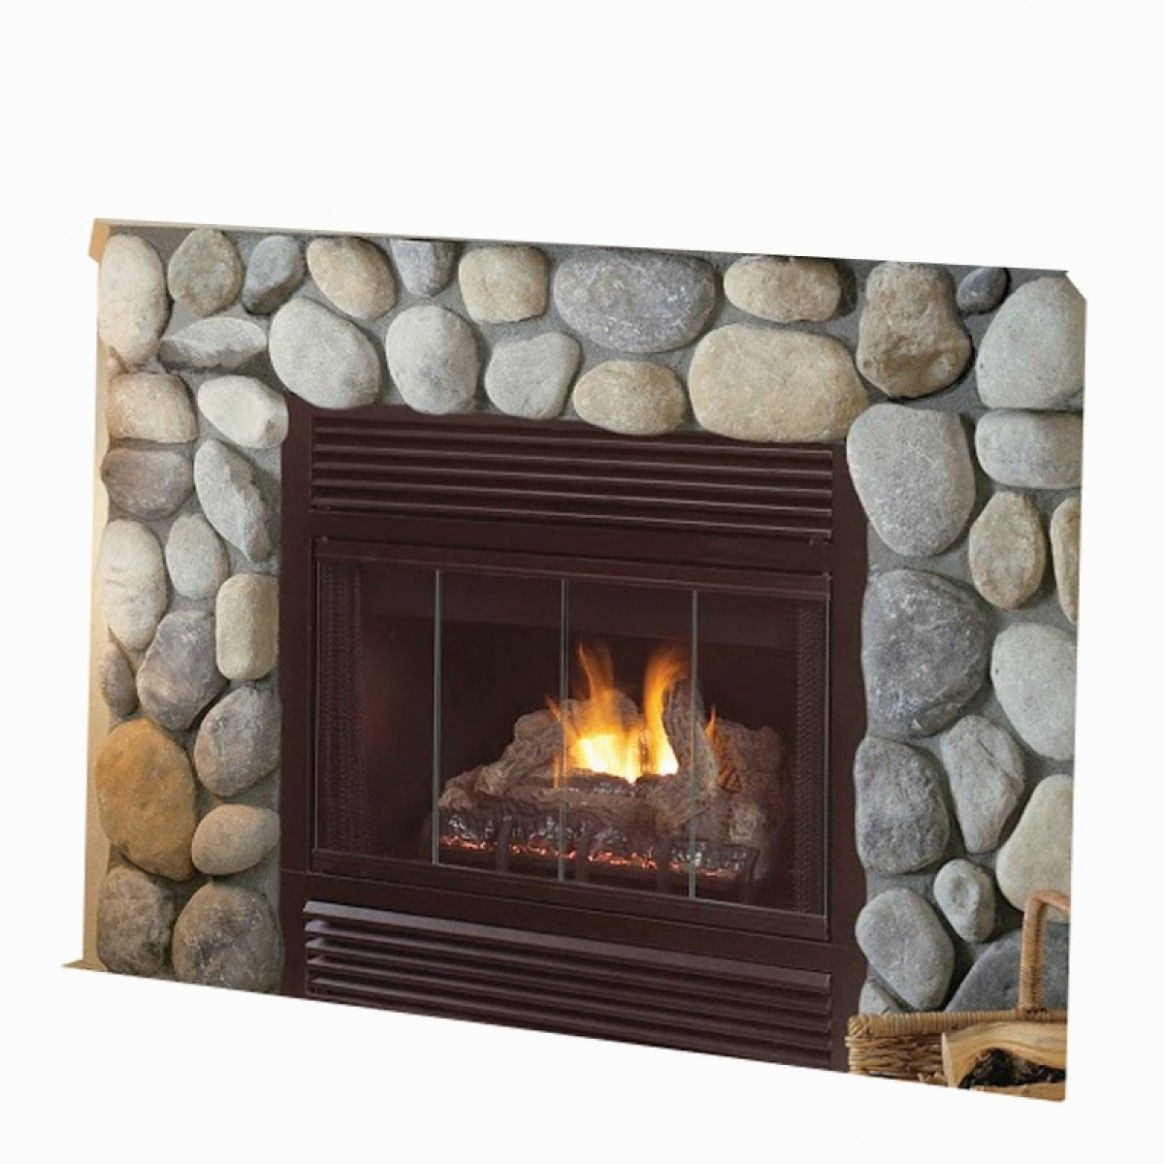 10 Great B Vent Gas Fireplace Ideas That You Can Share With Your Friends In 2020 Gas Fireplace Vented Gas Fireplace Fireplace